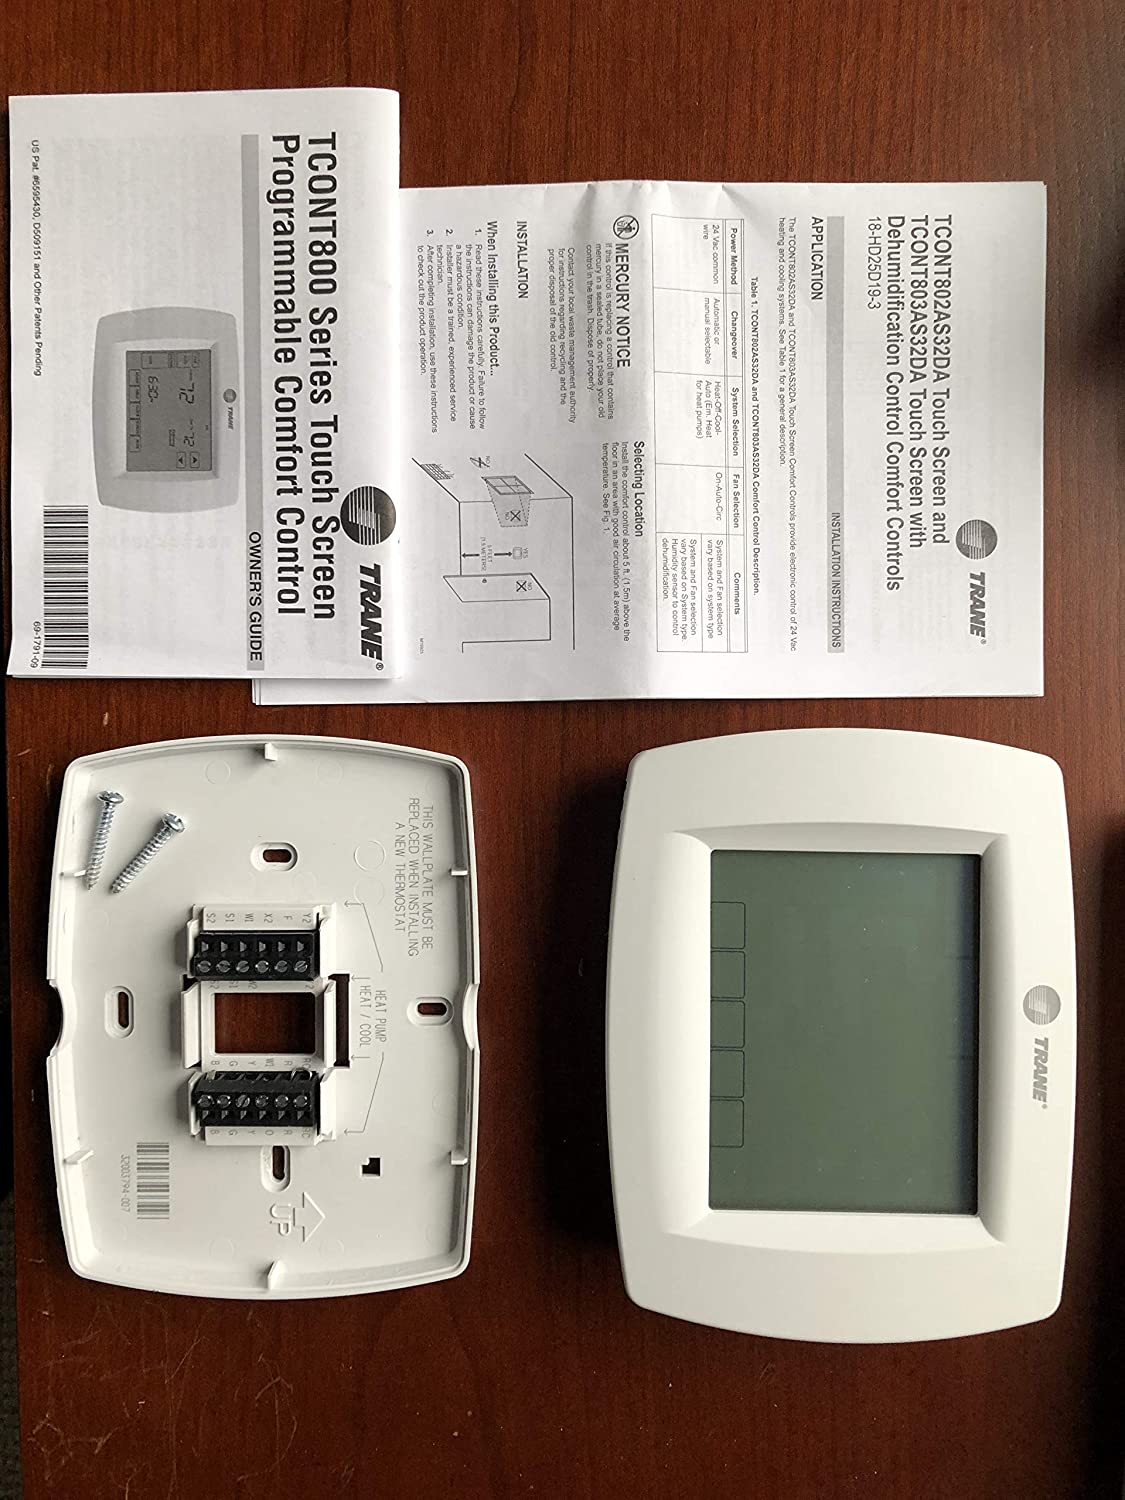 Trane Multi Stage Thermostat 7 Day Programmable Touchscreen 8600 Wiring Diagram Tcont802as32daa Th8320u1040 Tht02478